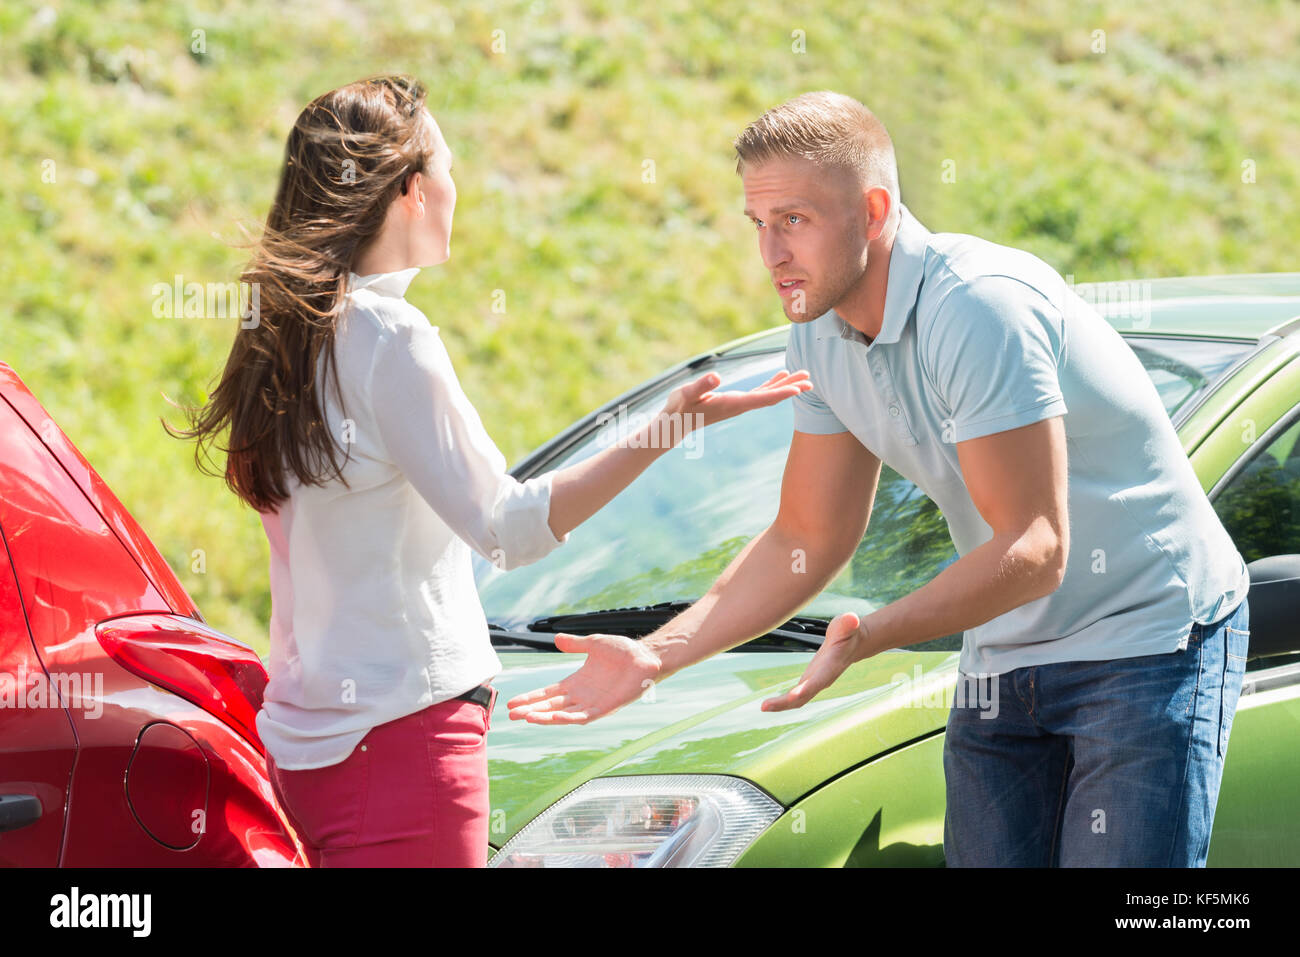 Unhappy Young Couple Arguing With Each Other On Street - Stock Image